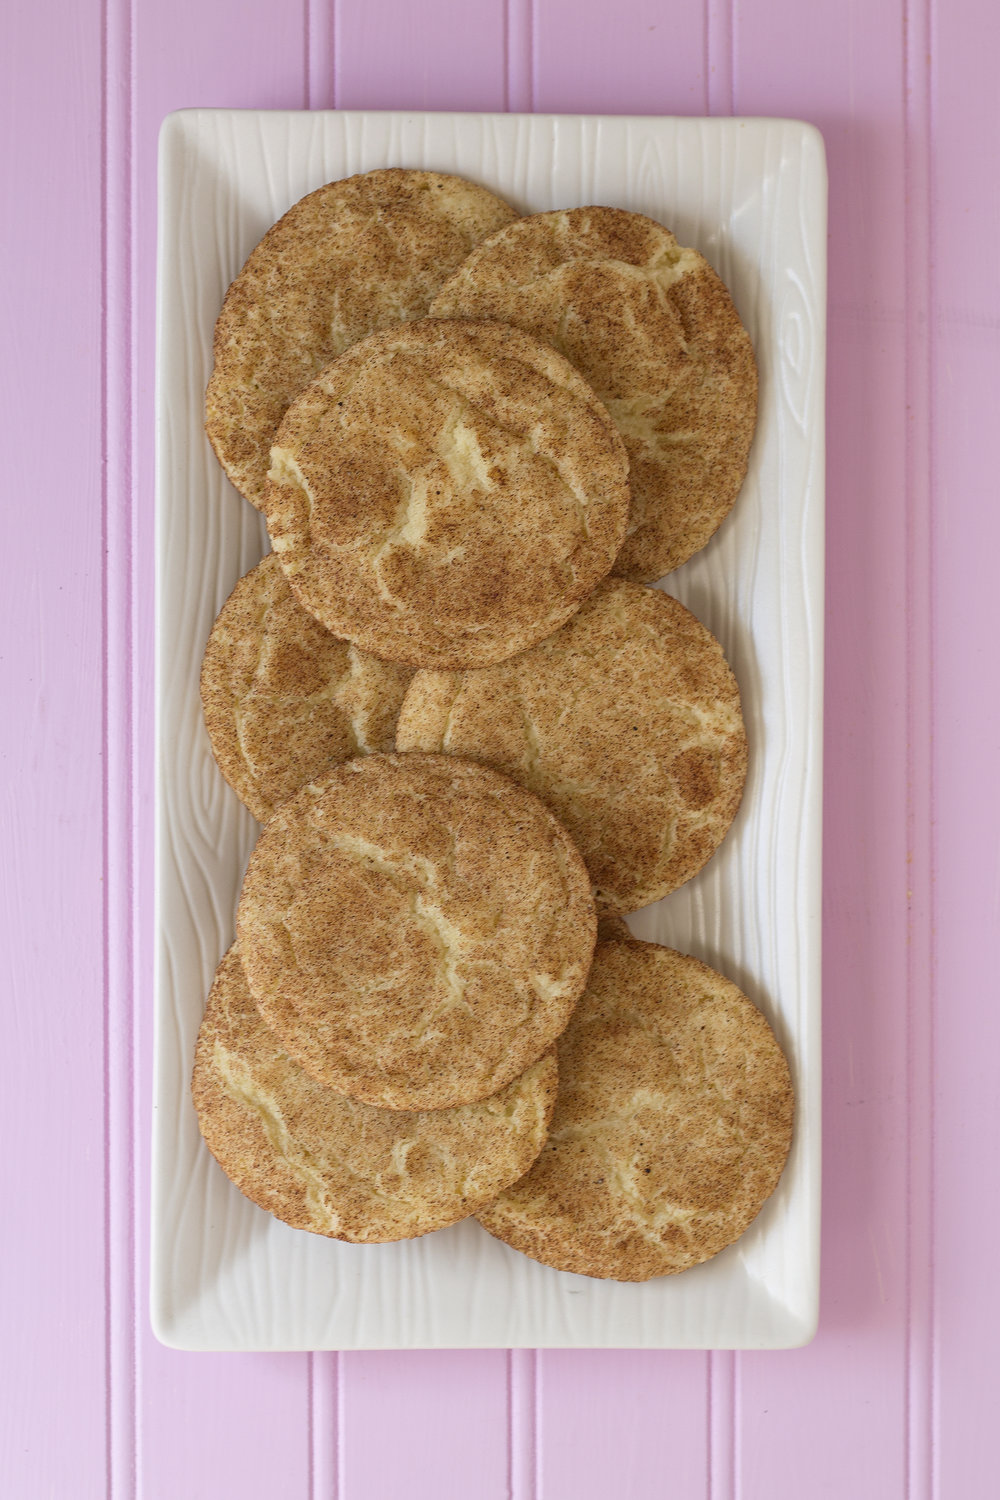 Get the recipe for these Chai Snickerdoodles. UnusuallyLovely.com